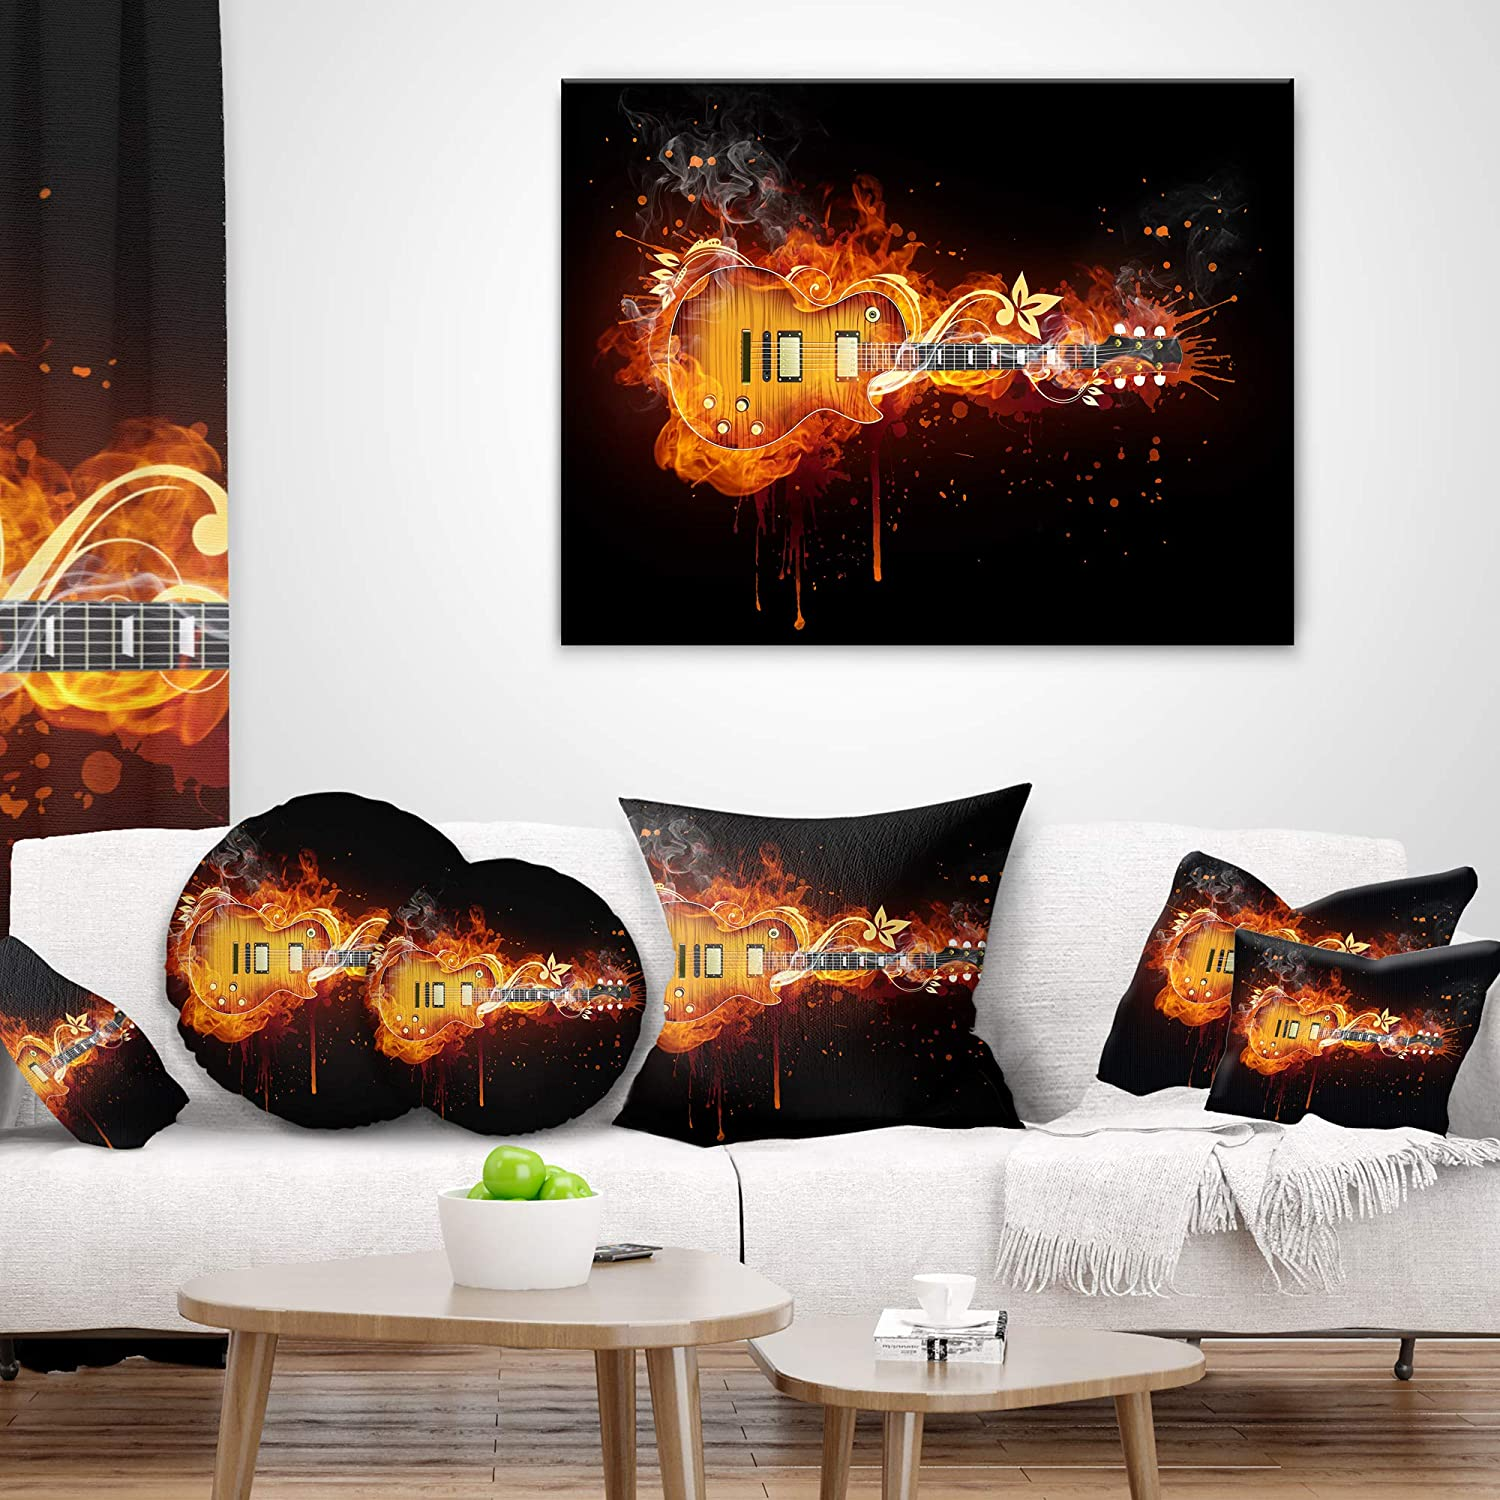 Insert Printed On Both Side Sofa Throw Pillow 12 in Designart CU7150-12-20 Electric Guitar Abstract Lumbar Cushion Cover for Living Room x 20 in in